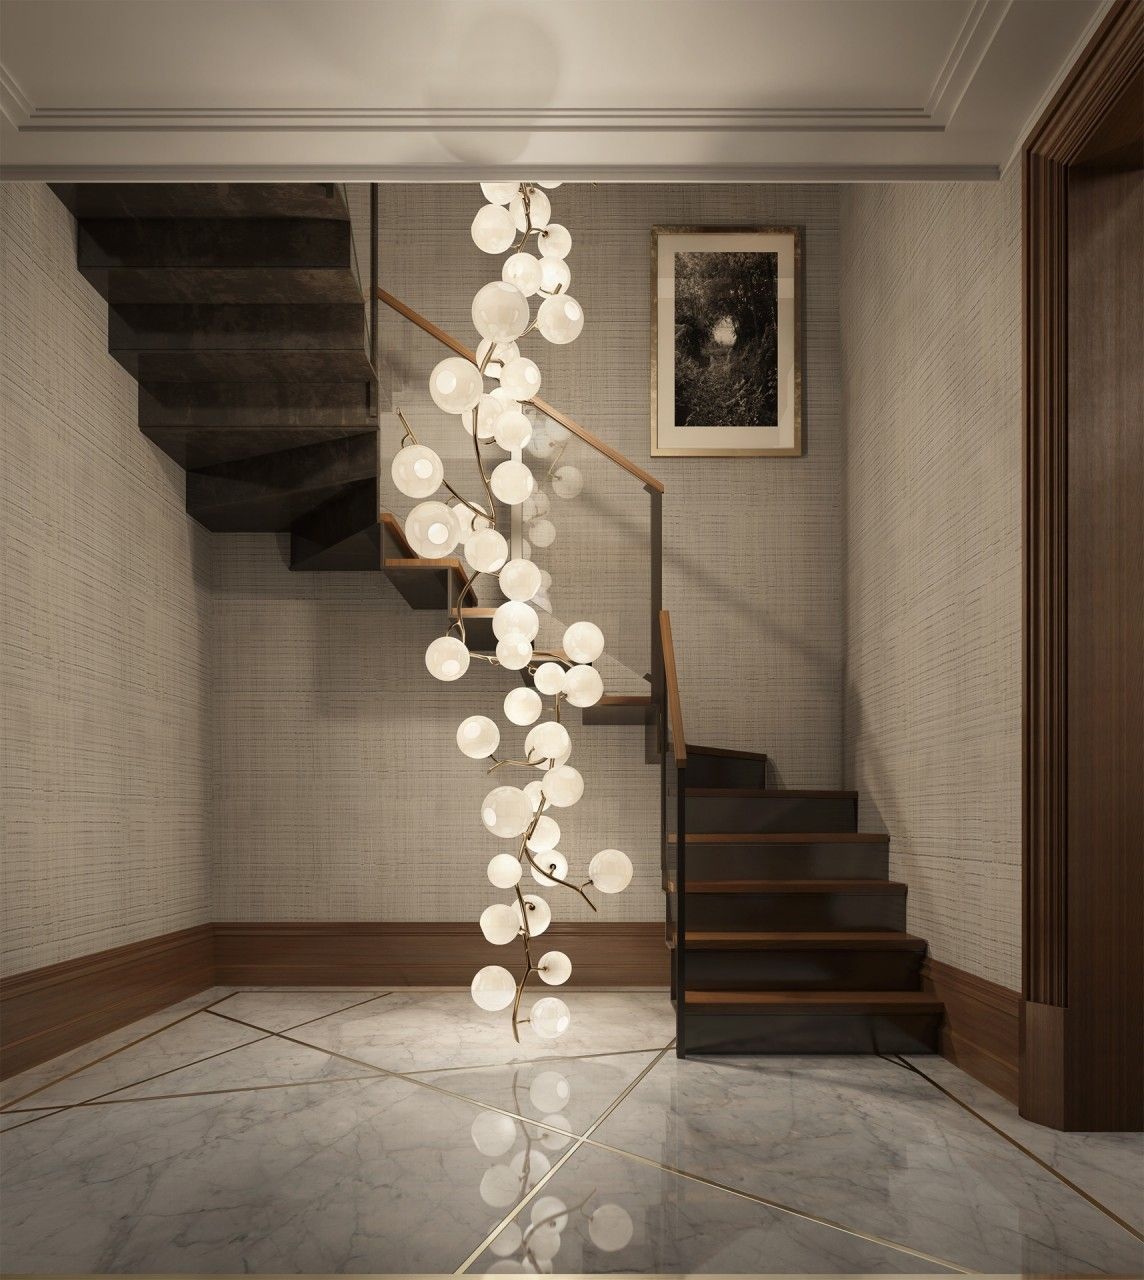 Pembrooke U0026 Ives Is A New York Interior Design Firm That Specializes In  Creati